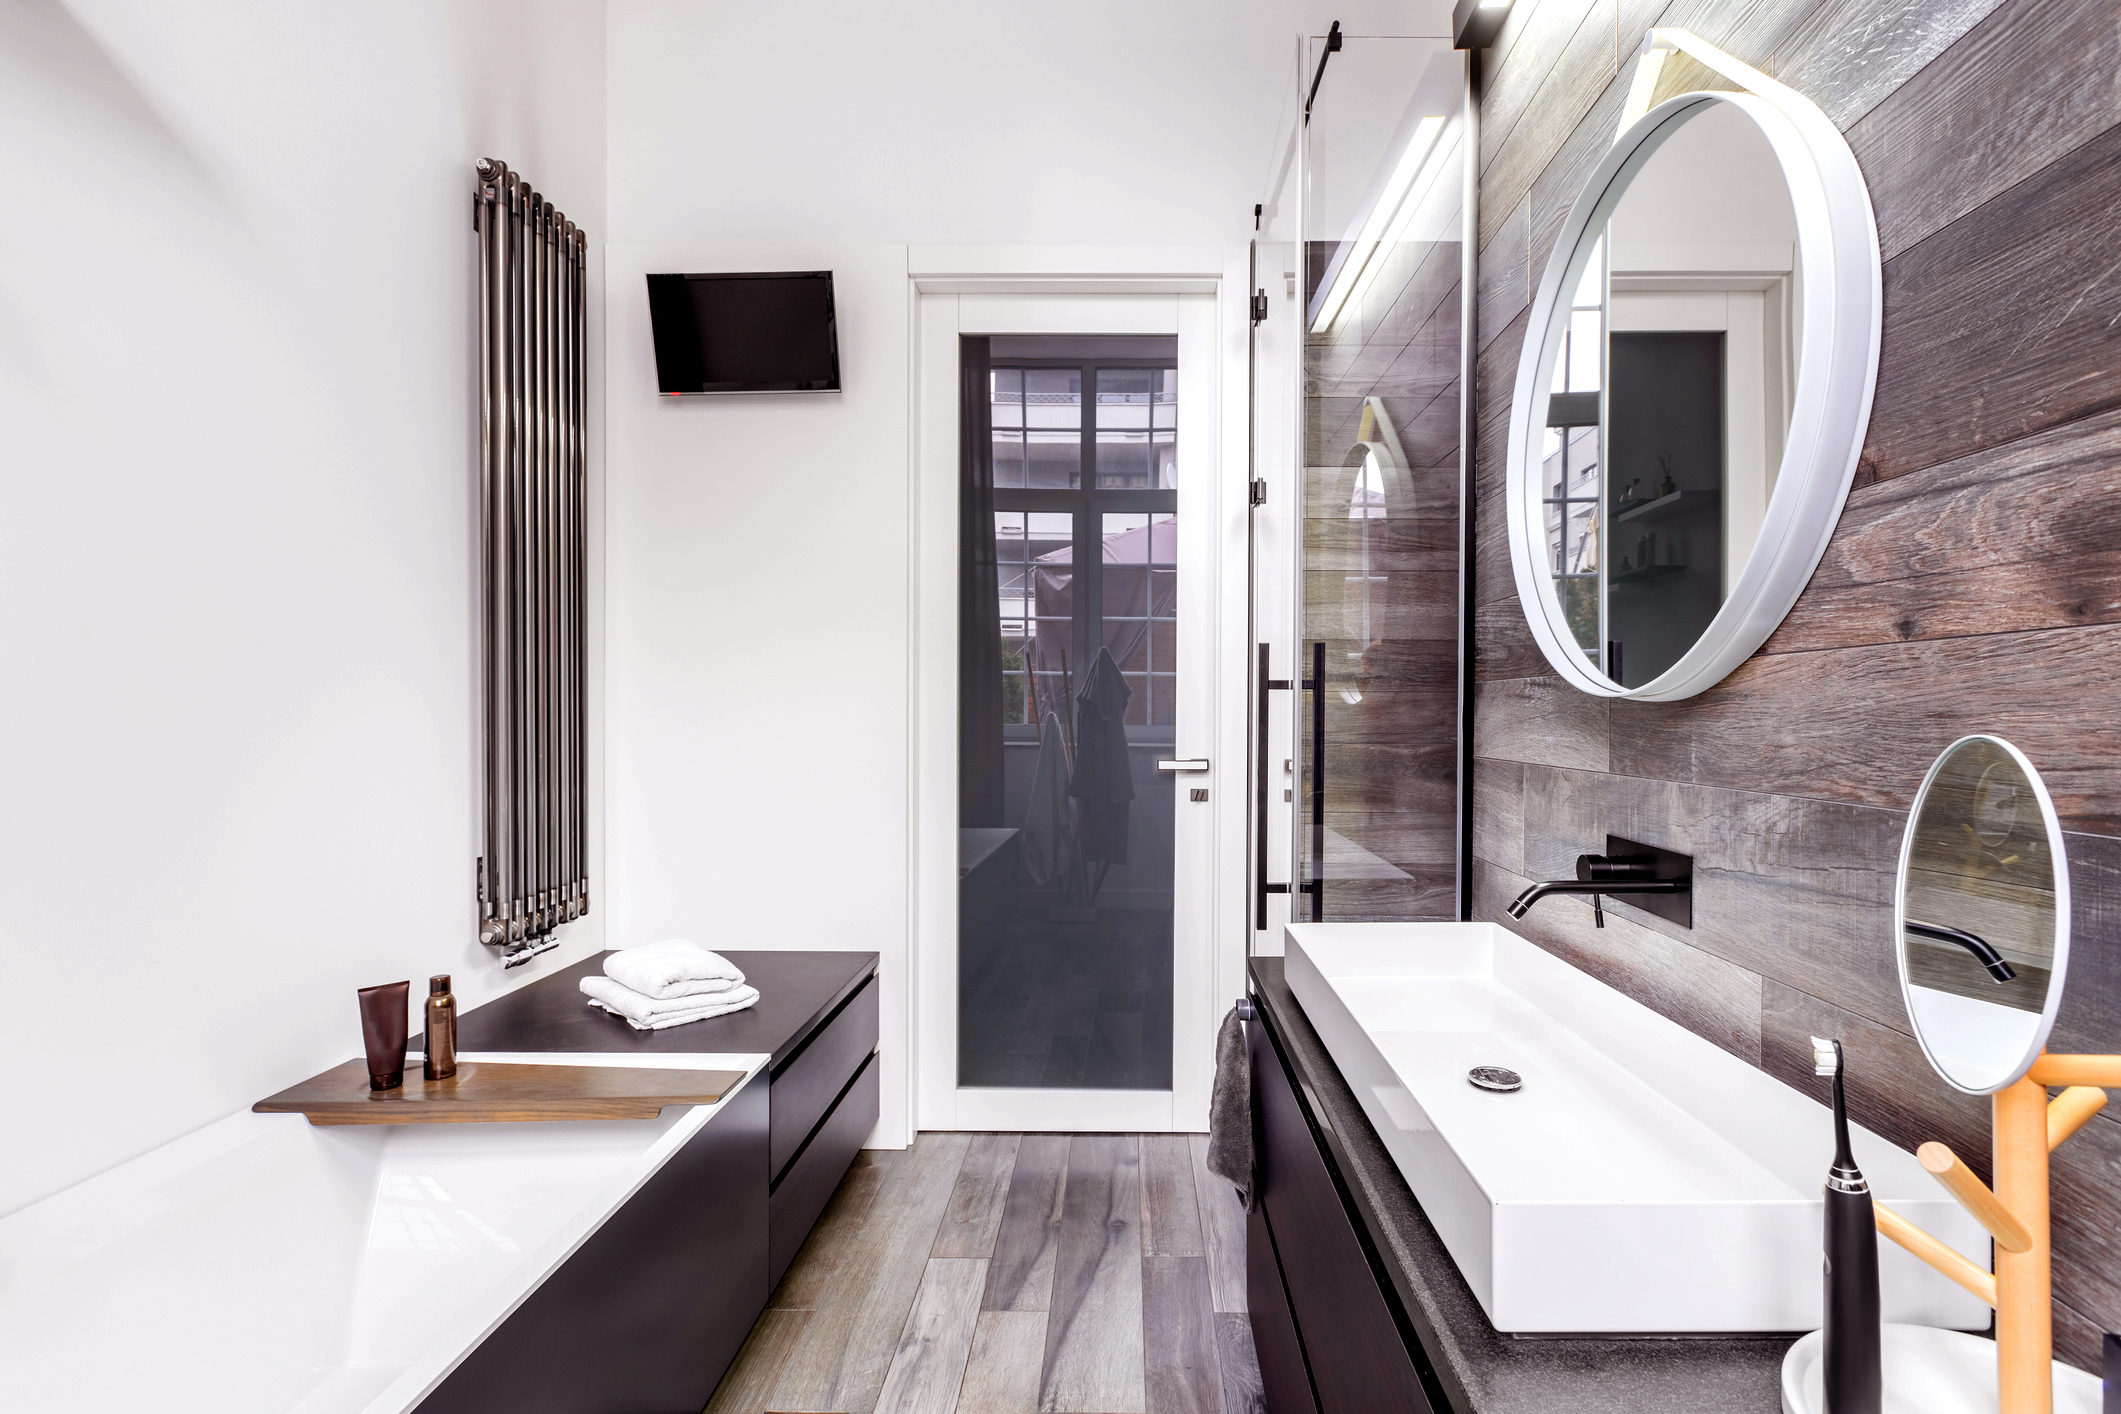 22 Small Bathroom Design Ideas Make The Most Of Your Space Lovetoknow